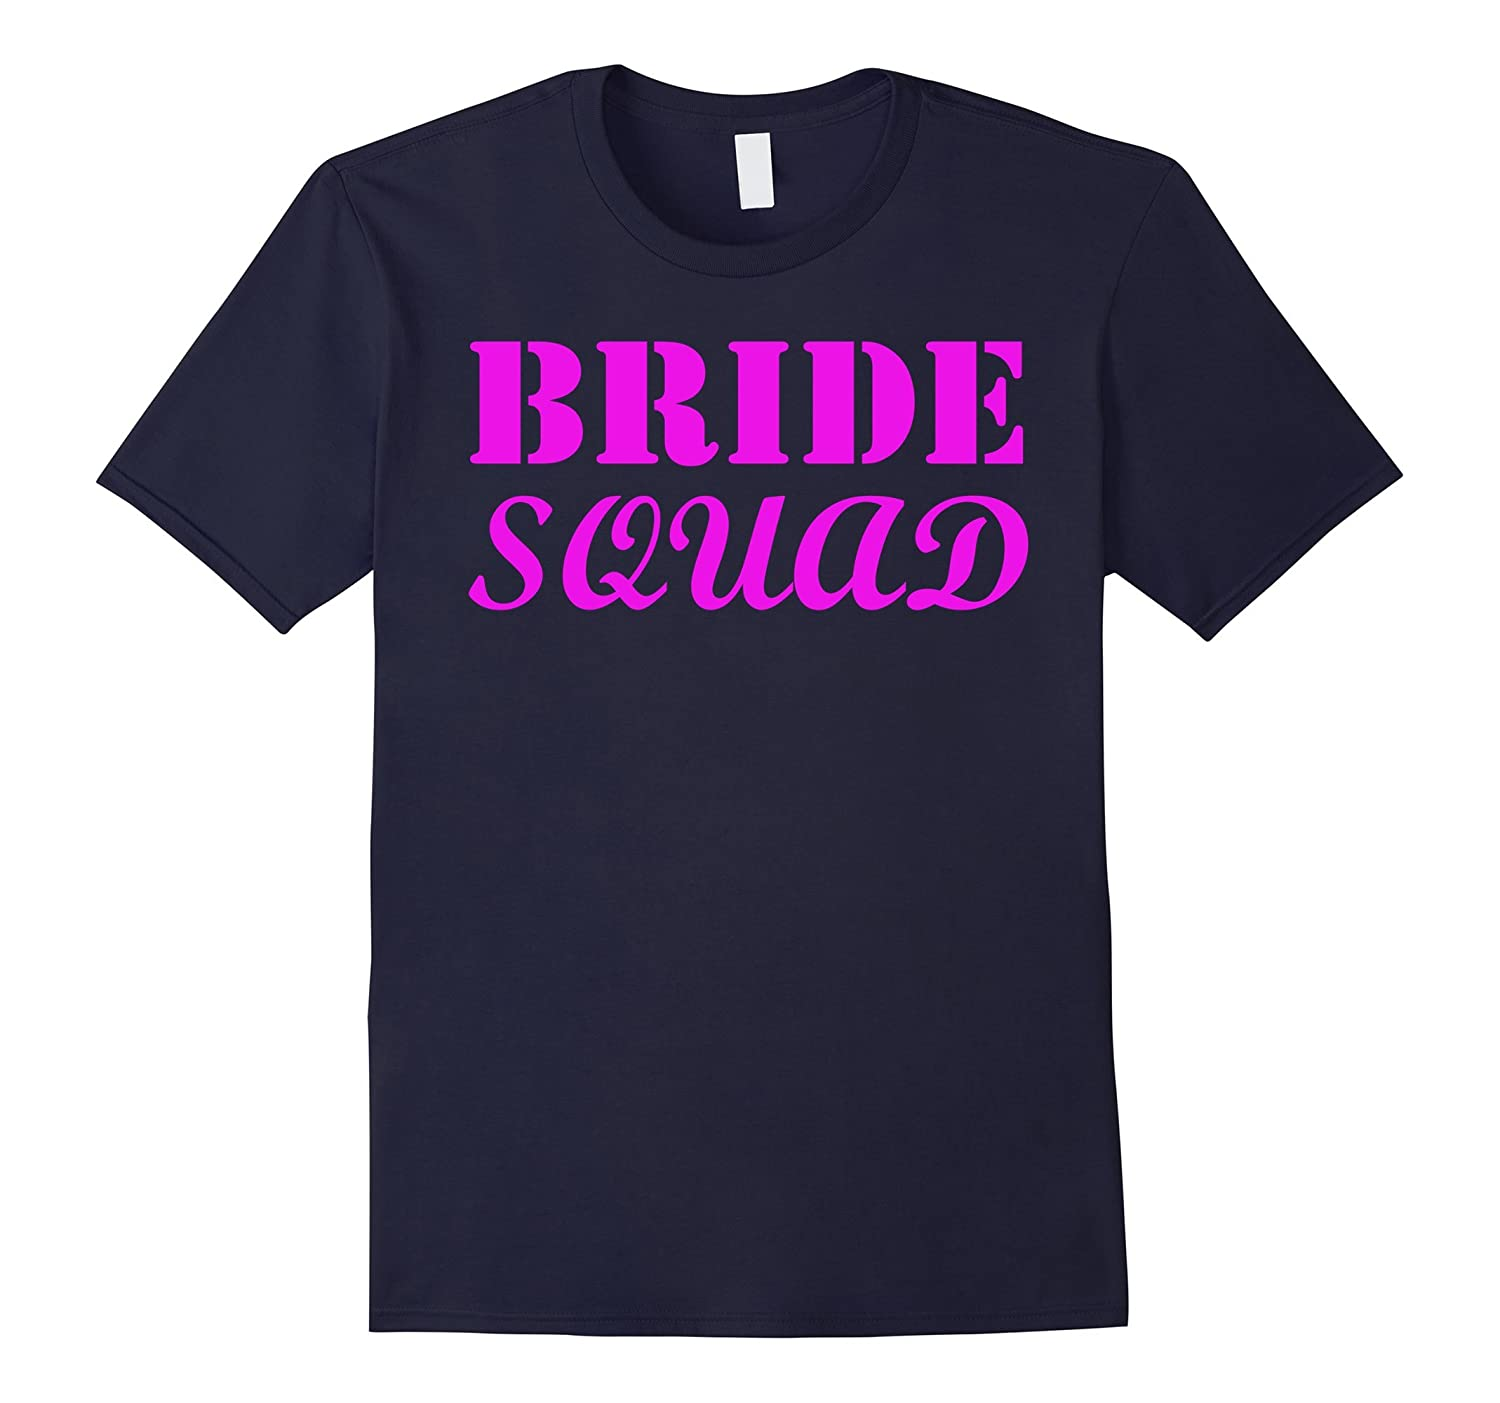 Bride Squad T-shirt Wedding Party Shirt-Vaci